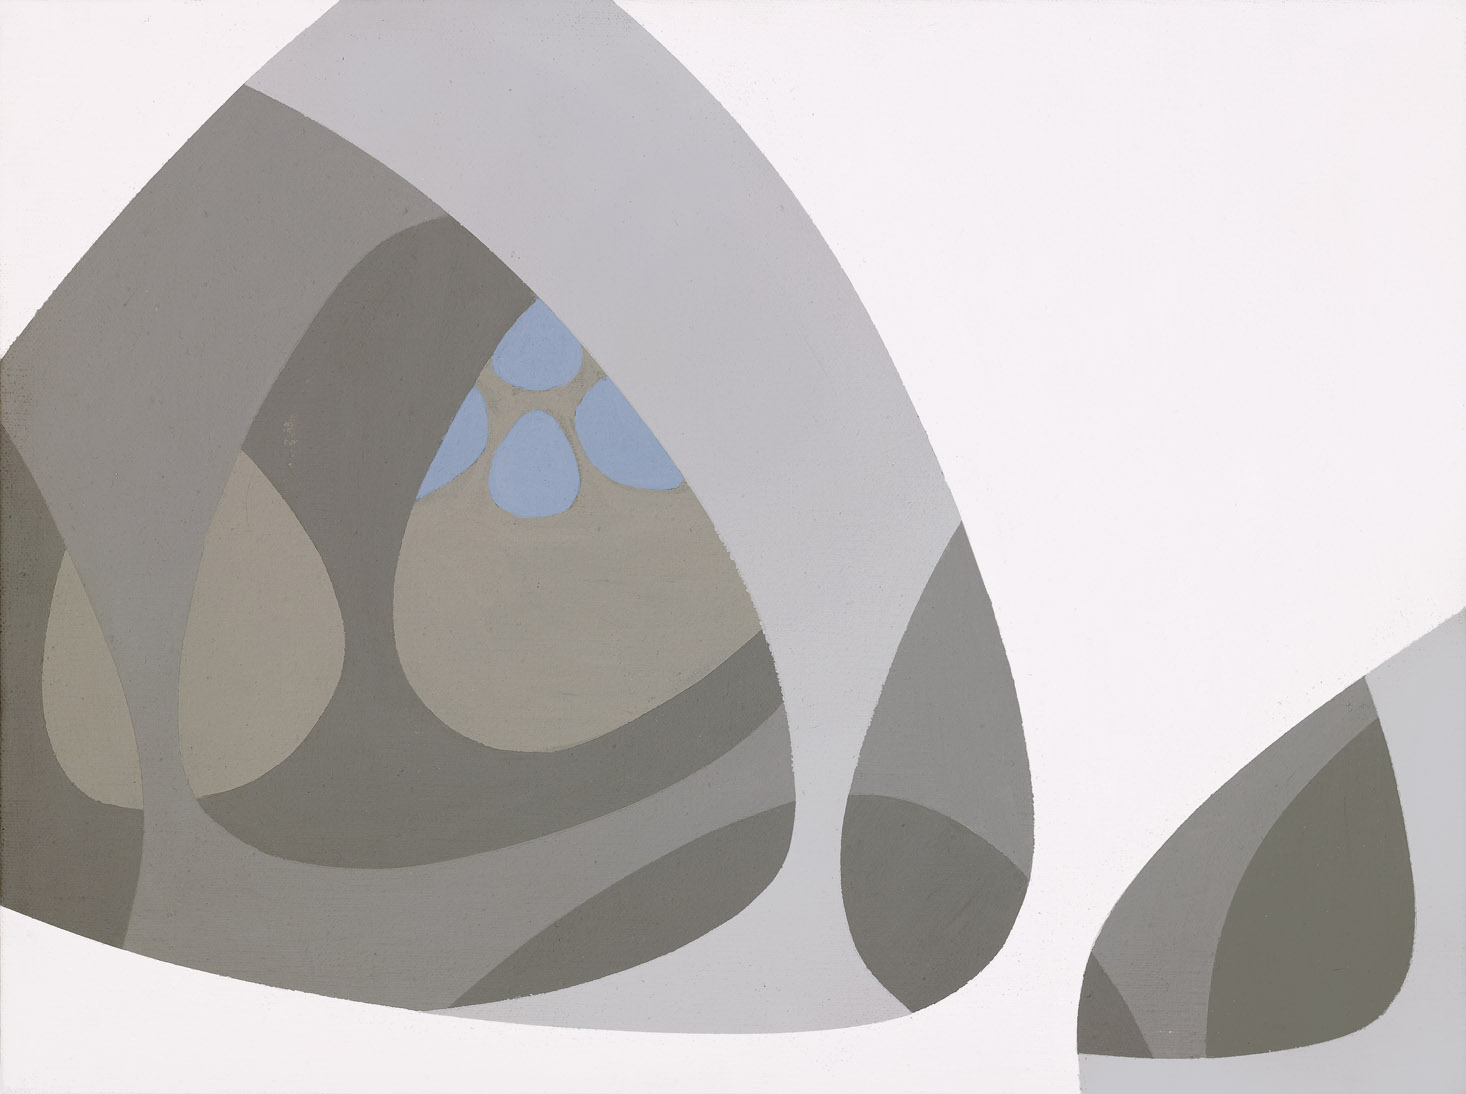 Untitled (arcane forms) , 1970  acrylic on canvas 12 x 16 inches; 30.5 x 40.6 centimeters